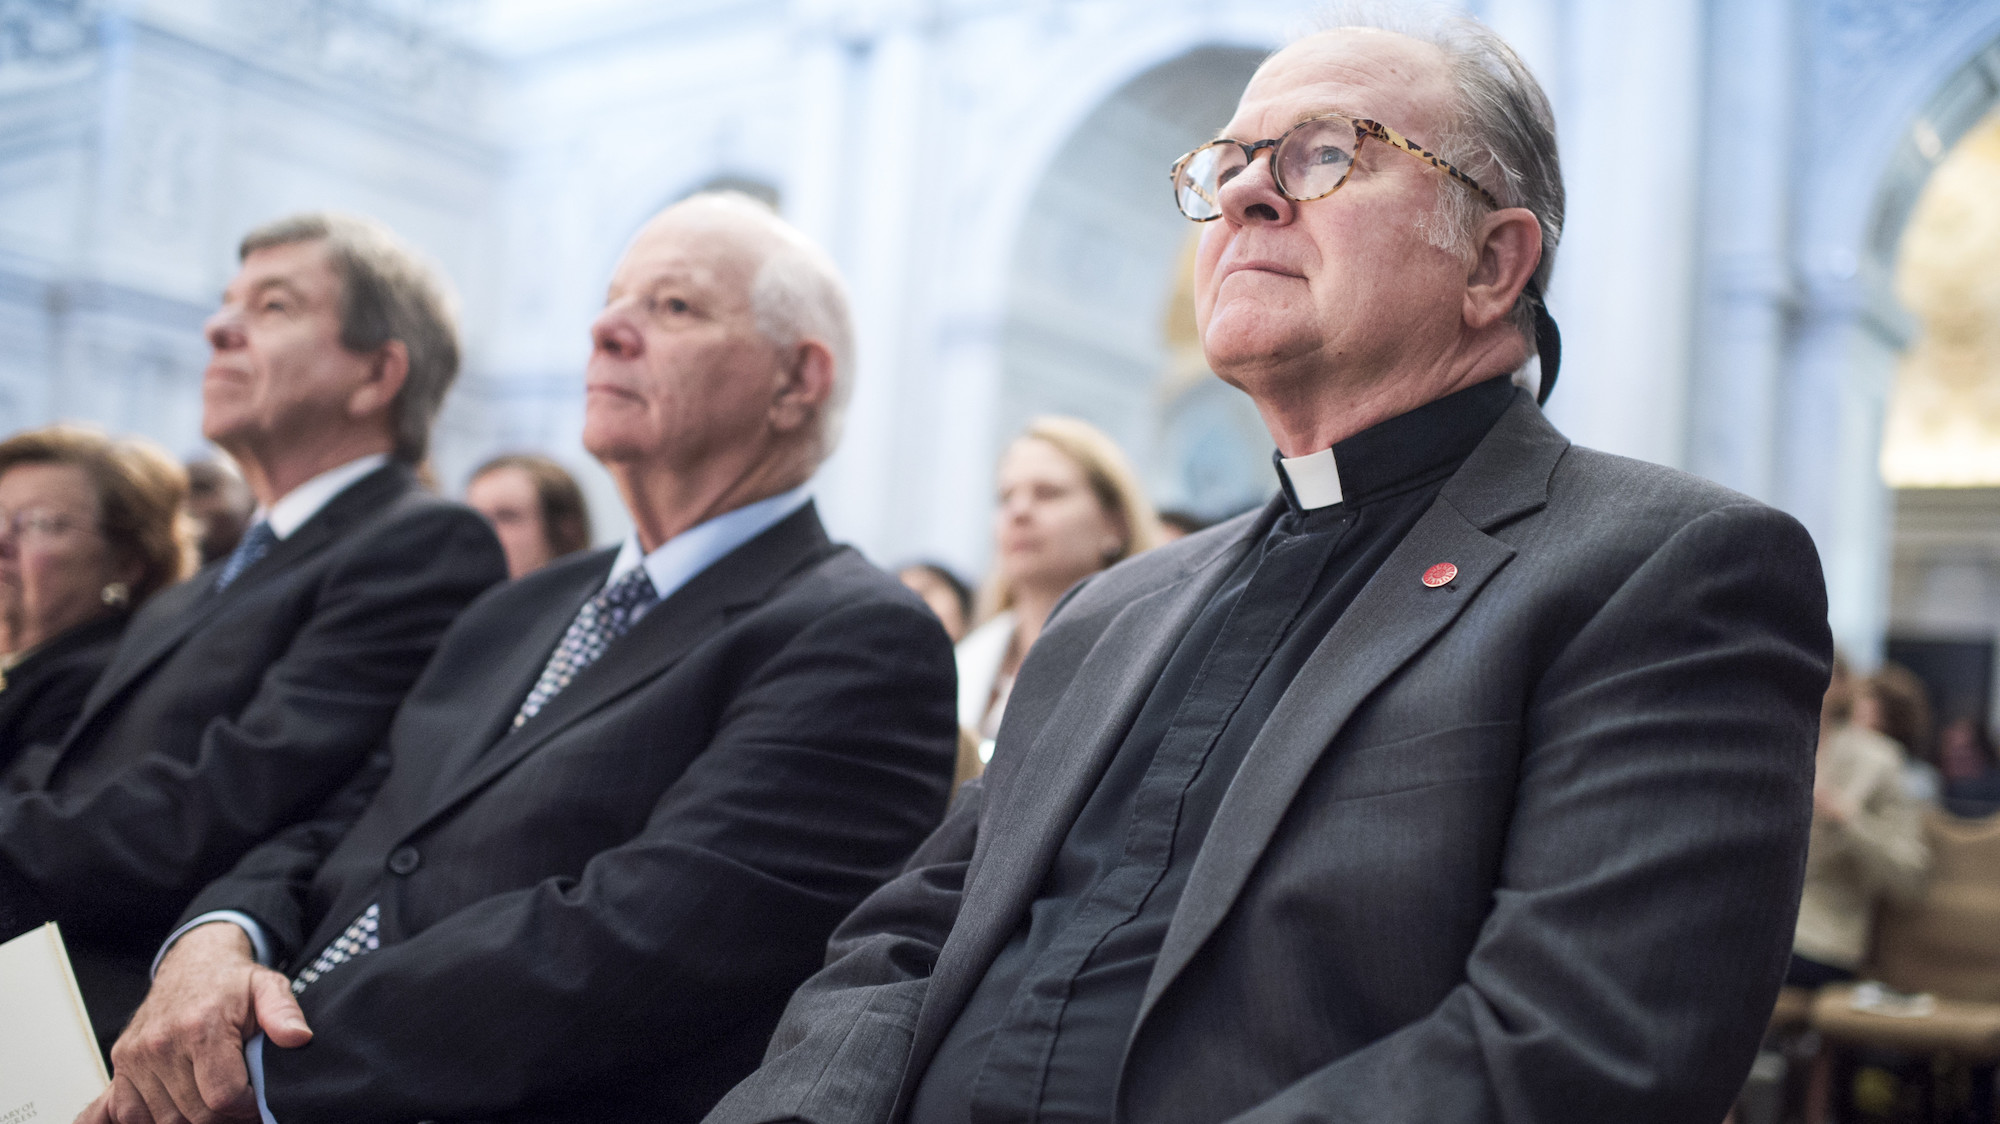 The House chaplain had a prayer and then he didn't